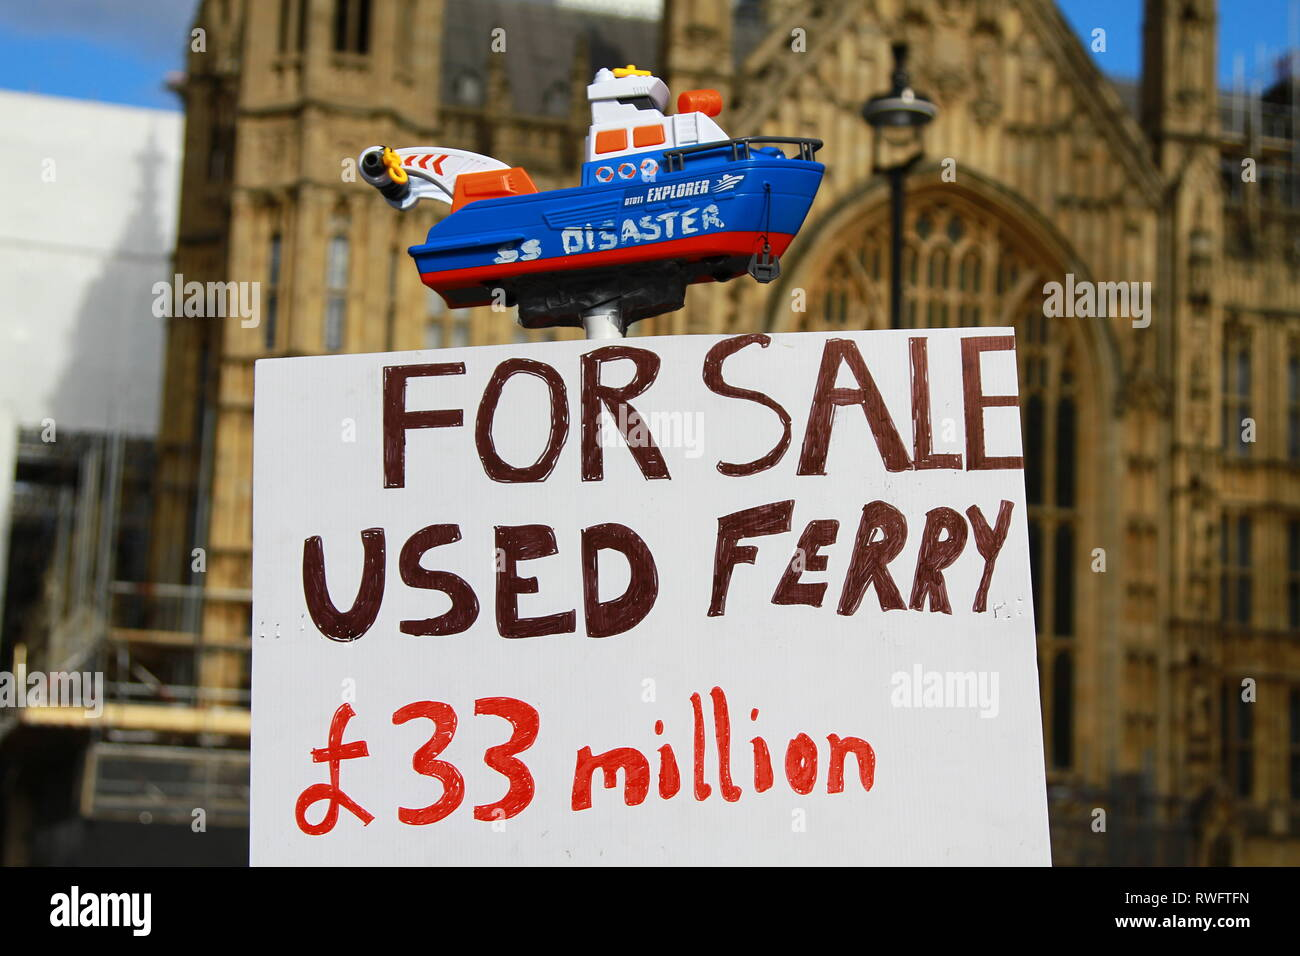 FAILING GRAYLING. FOR SALE USED FERRY 33 MILLION POUNDS SIGN WITH HOUSES OF PARLIAMENT IN BACKGROUND. WASTED TAX PAYERS MONEY. SIGN REFERRING TO MISTAKES MADE BY THE TRANSPORT SECRETARY CHRIS GRAYLING. GOVERNMENT MISTAKES. - Stock Image